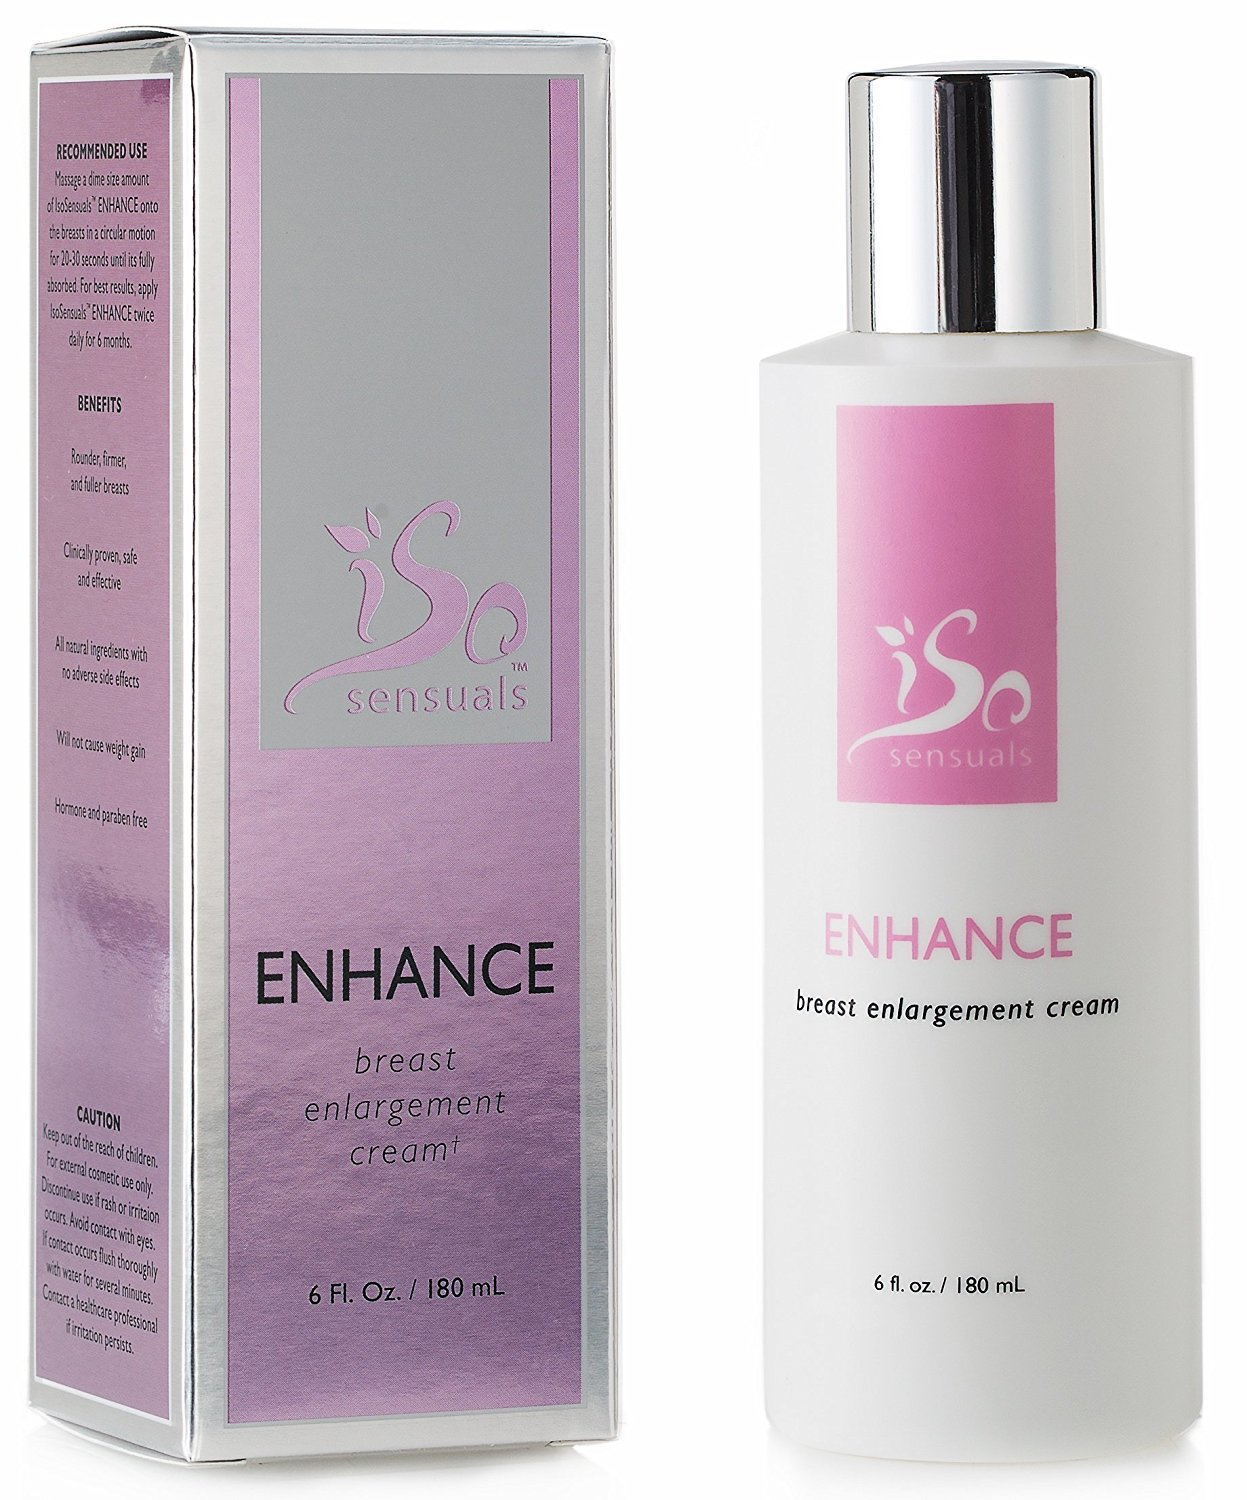 IsoSensuals ENHANCE | Breast Enlargement Cream